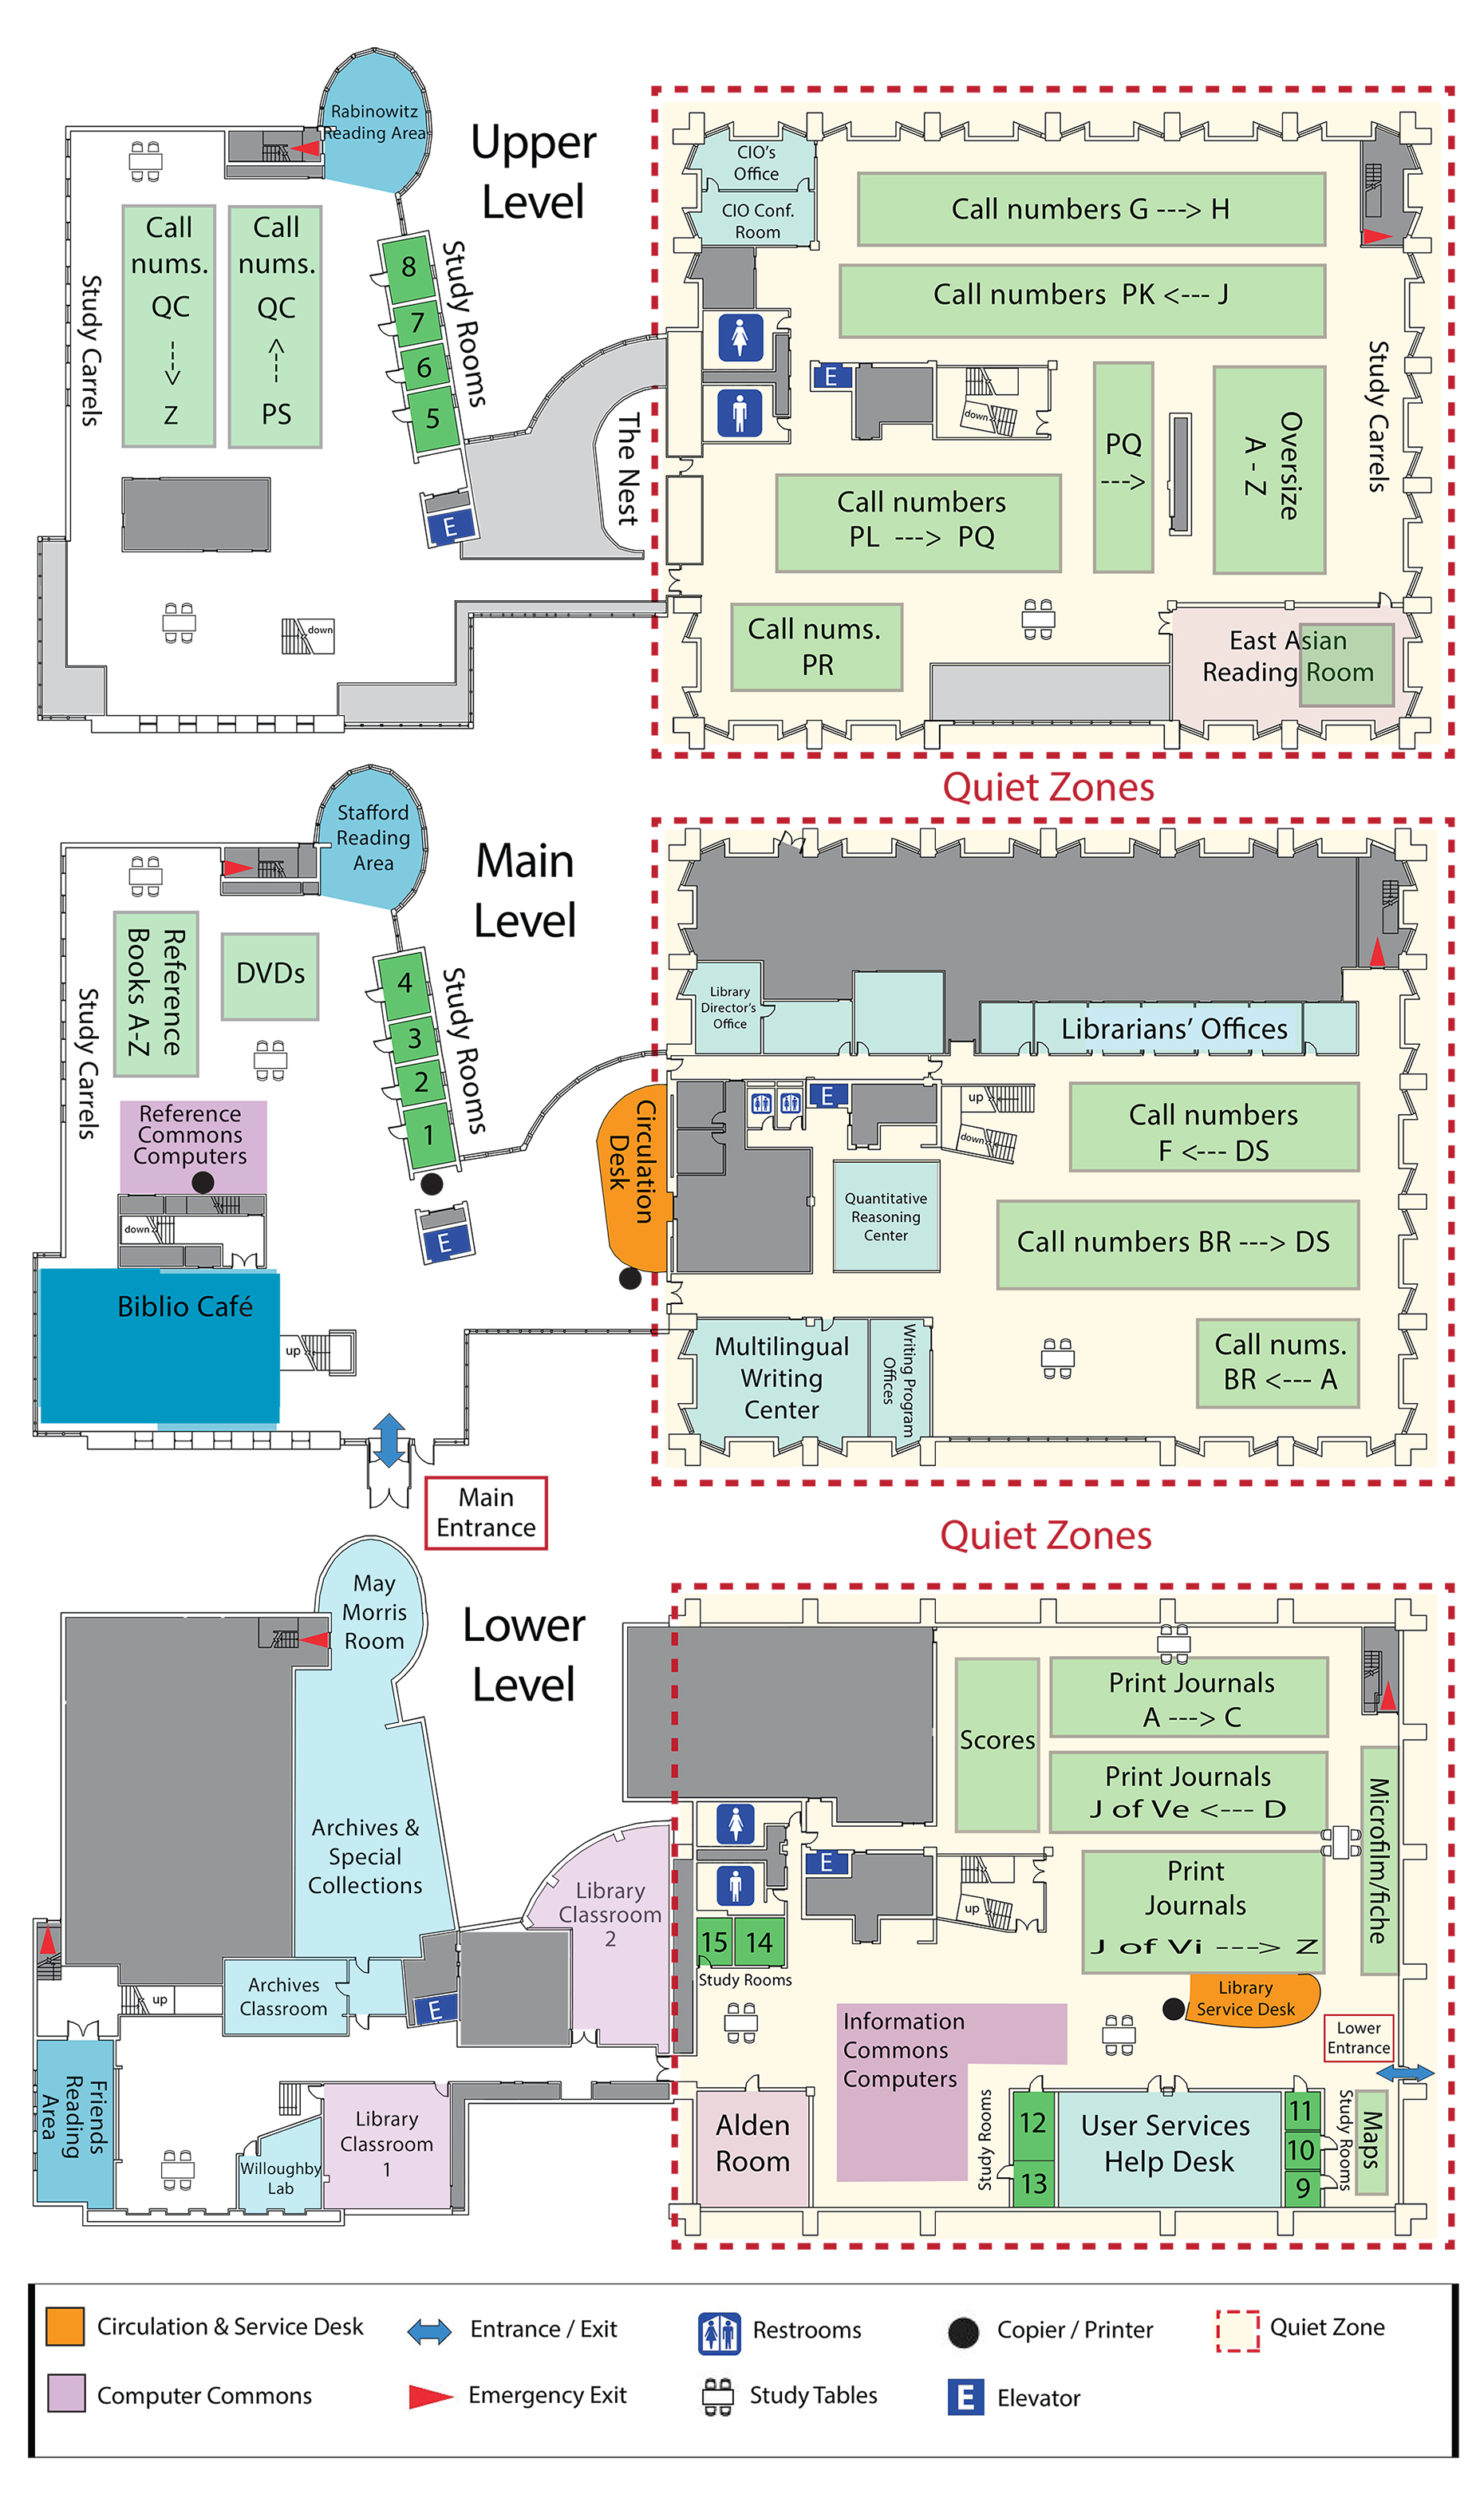 Map of the Waidner-Spahr Library